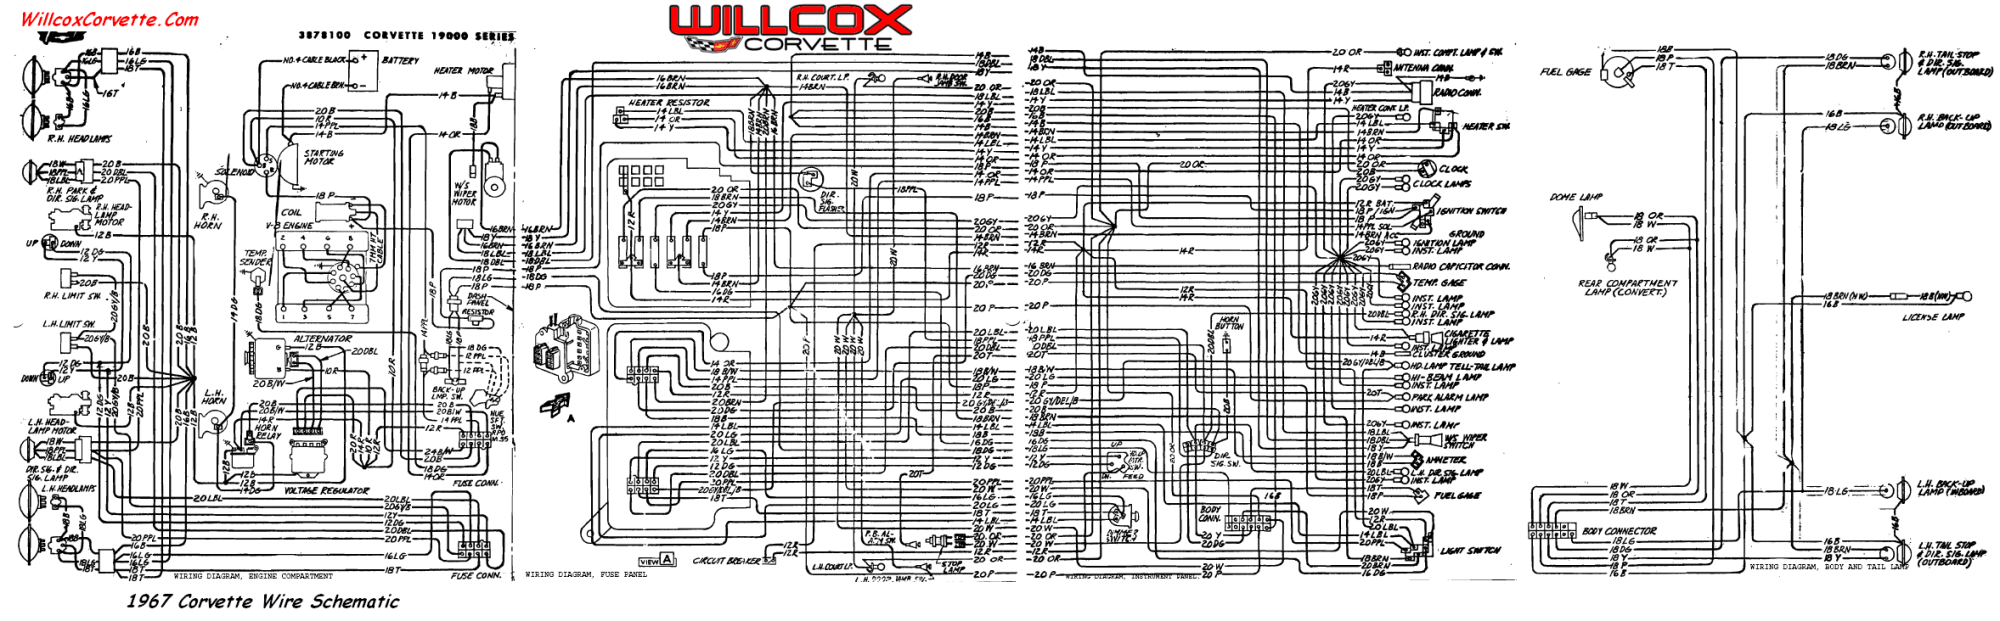 hight resolution of 95 corvette wiring diagrams wiring diagram todays rh 15 14 8 1813weddingbarn com 1984 corvette wiring